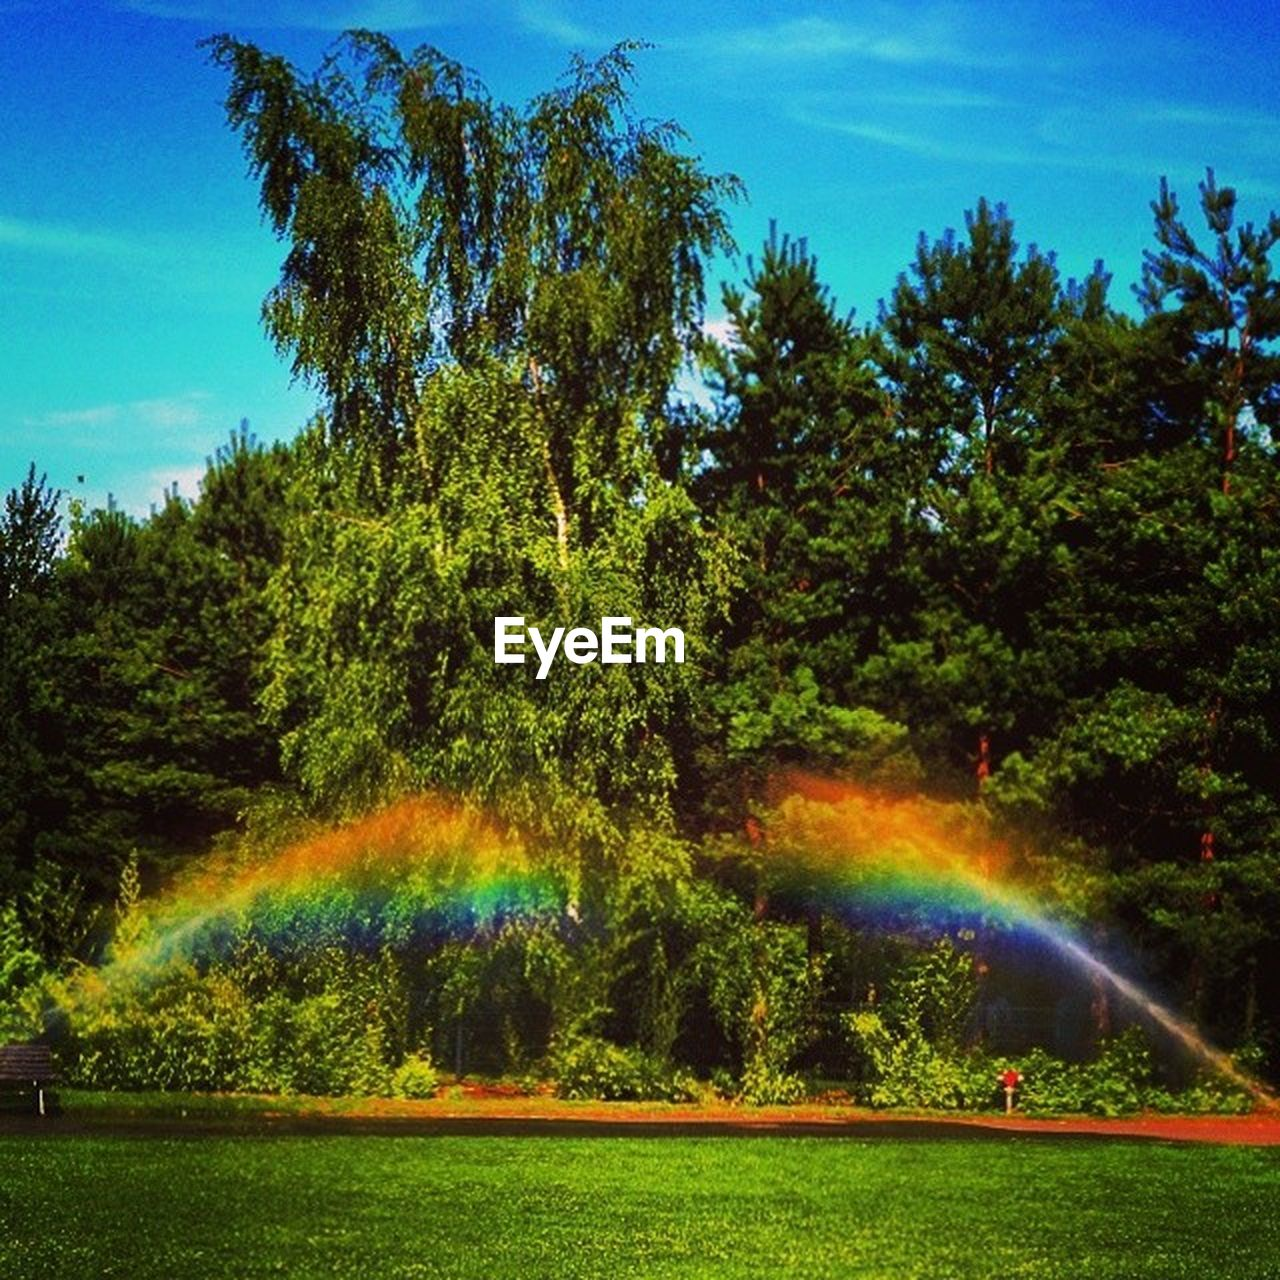 tree, rainbow, nature, beauty in nature, day, double rainbow, sky, outdoors, growth, scenics, multi colored, sunlight, grass, water, no people